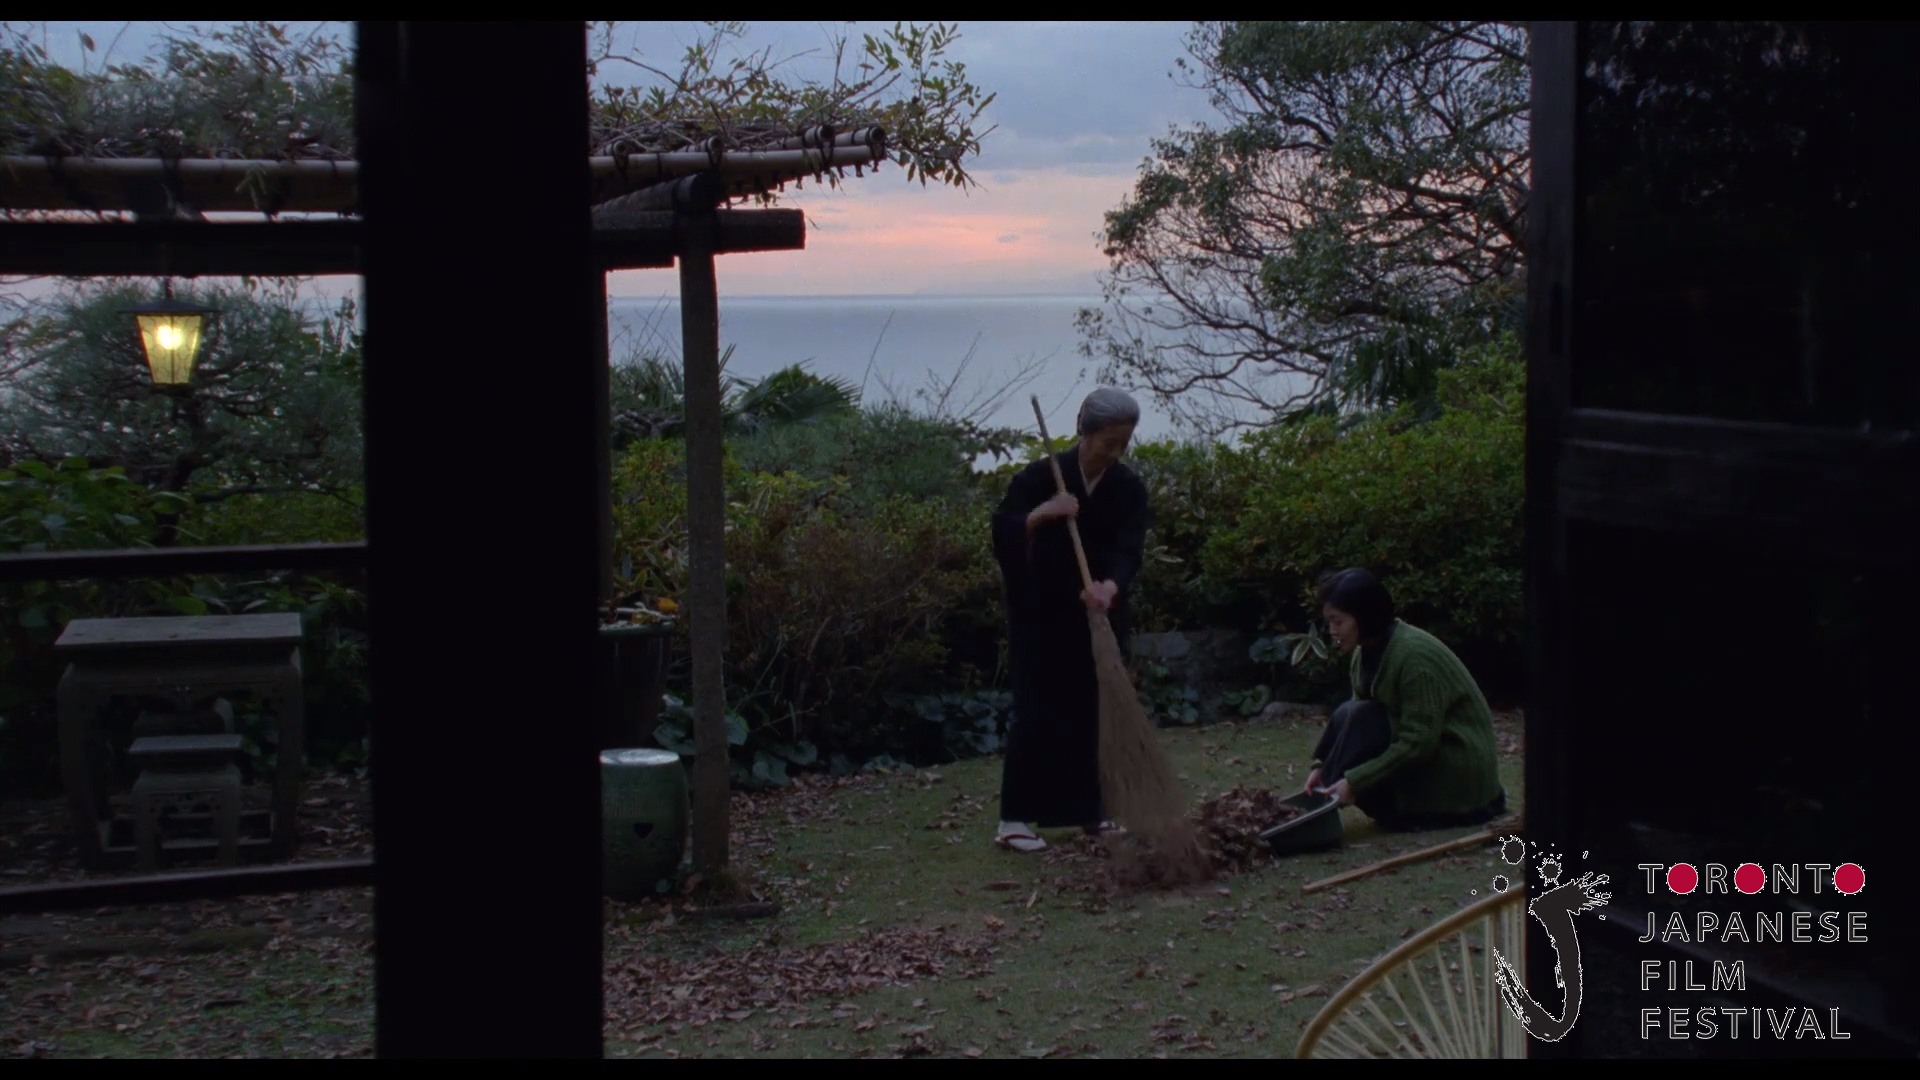 [TJFF] A garden of the Camellias (椿の庭) — Beauty, virtue and modesty